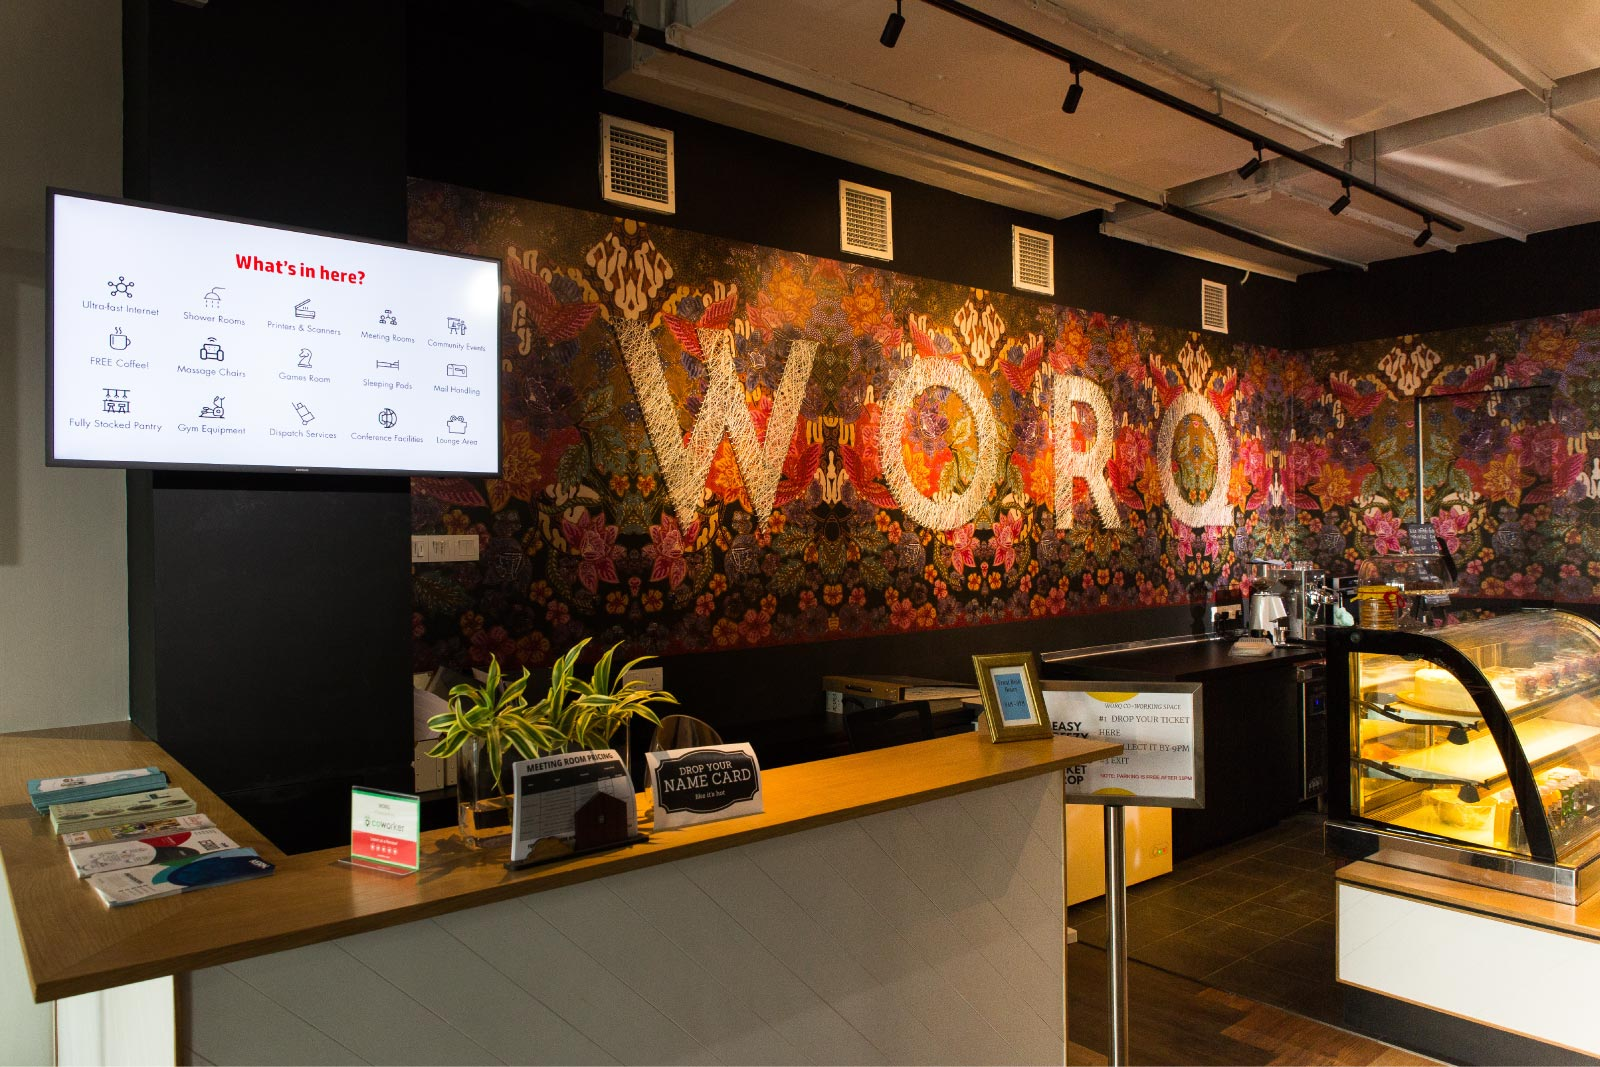 WORQ is open 24-7, allowing digital nomads and entrepreneurs the freedom to chose when they work.